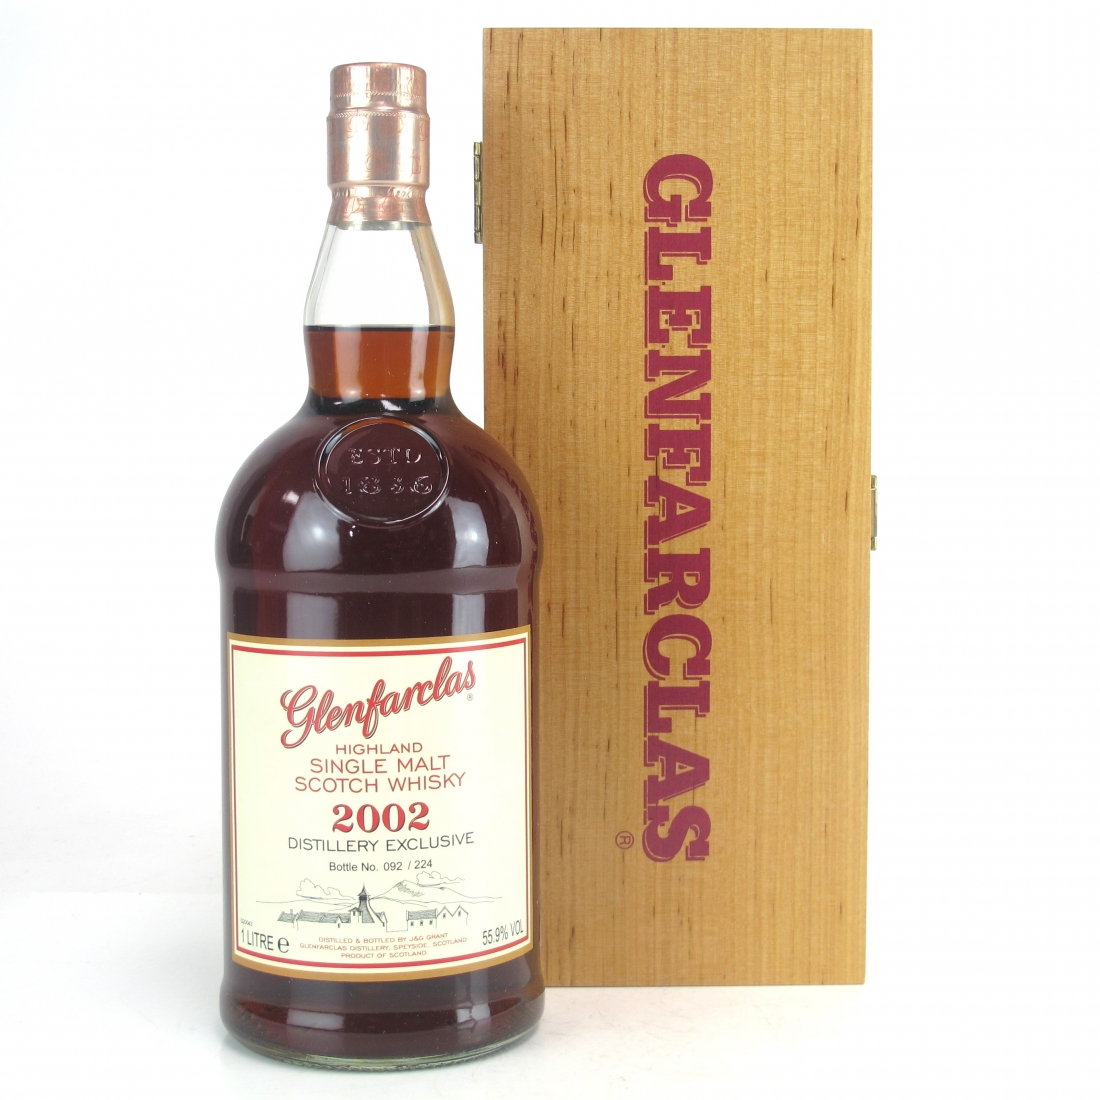 Glenfarclas 2002 Single Cask 1 Litre / Distillery Exclusive 2016